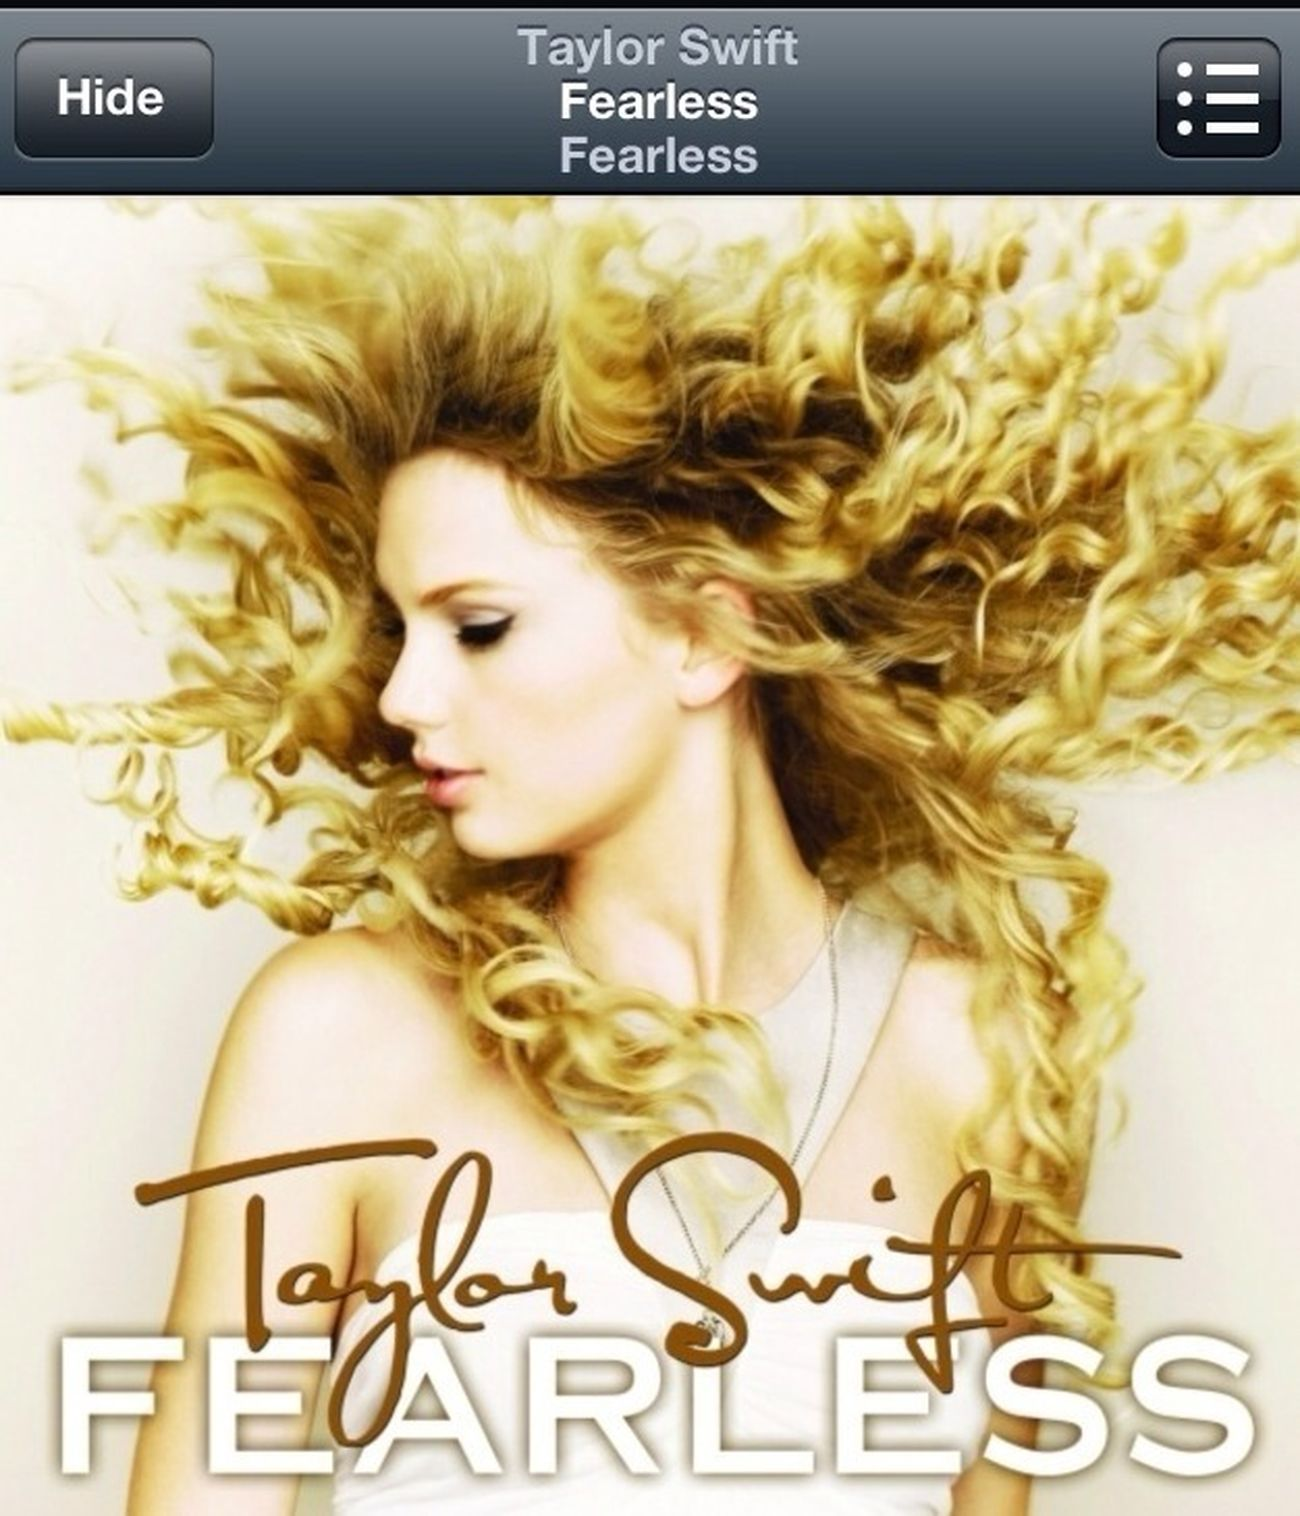 Gotta ❤ Taylor Swift YaBish